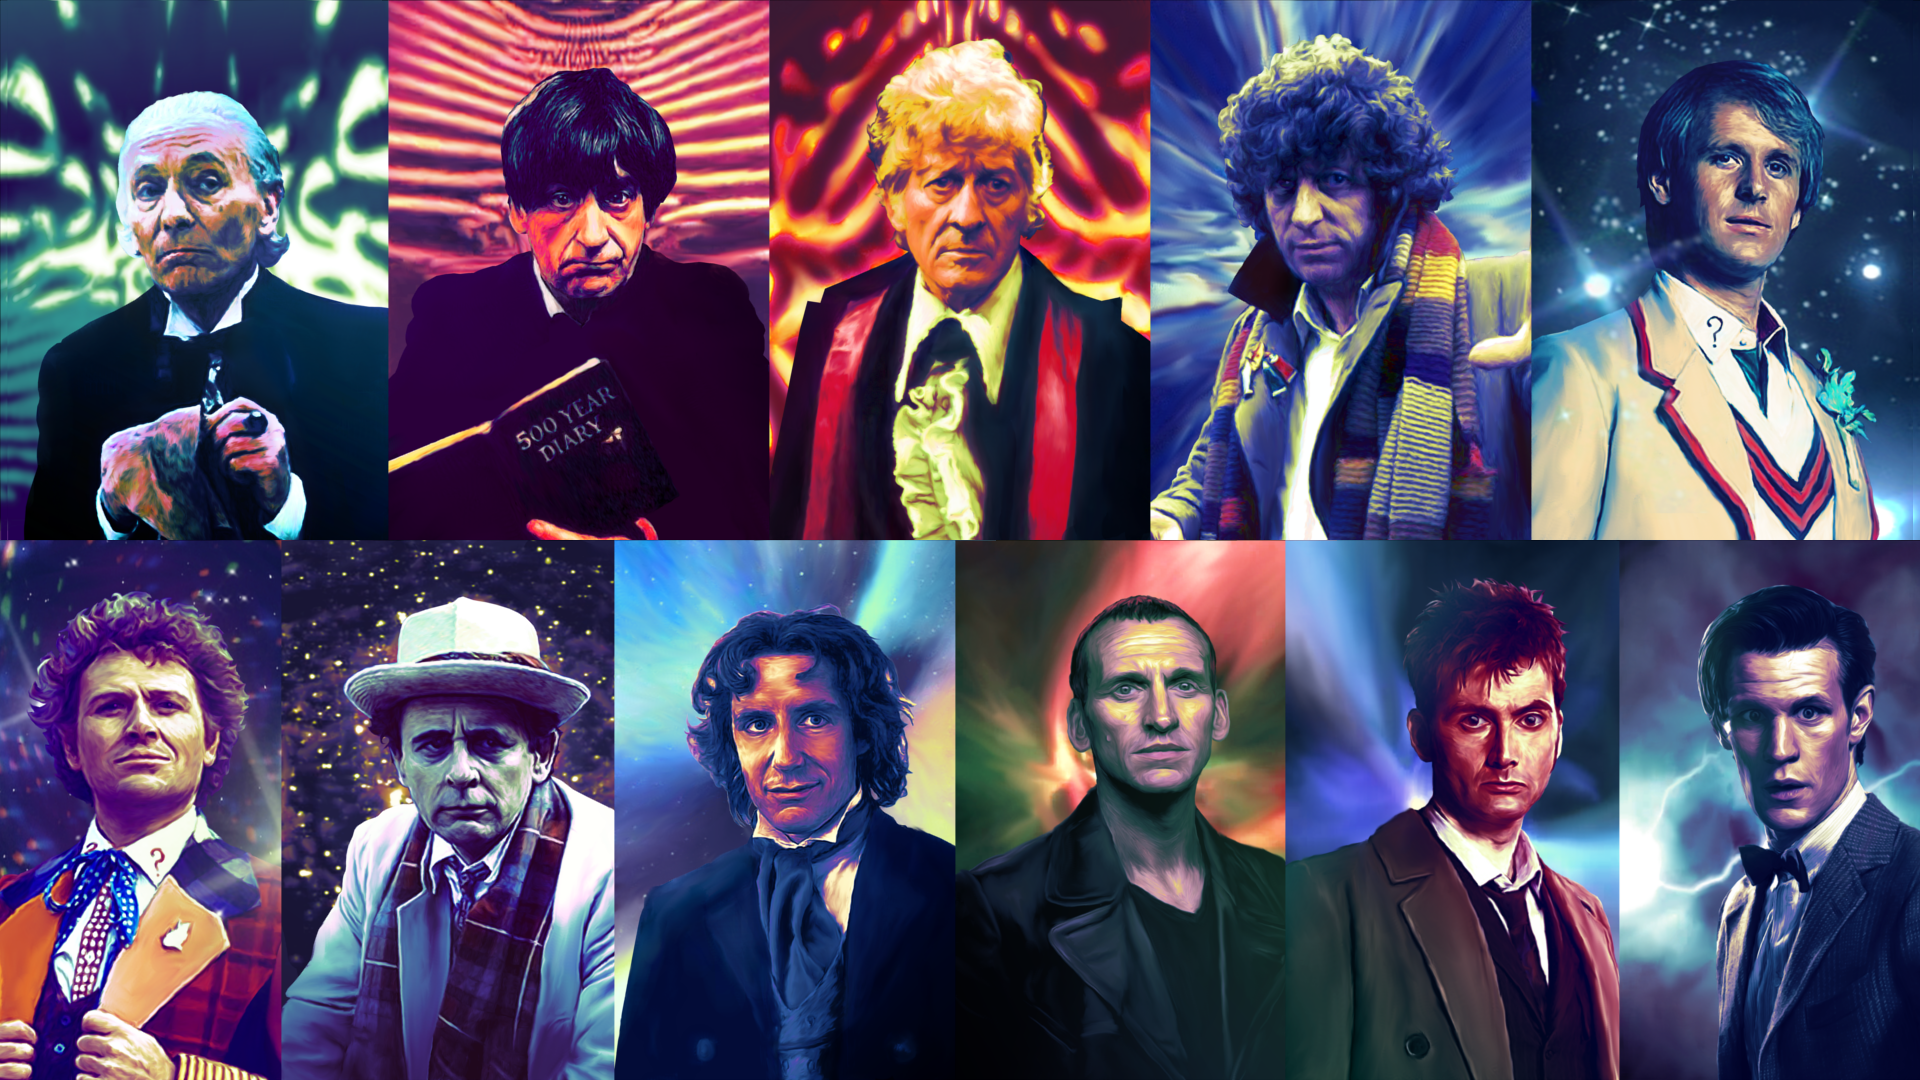 Doctor Who All Doctors Wallpaper Doctor who wallpaper v1 by 1920x1080